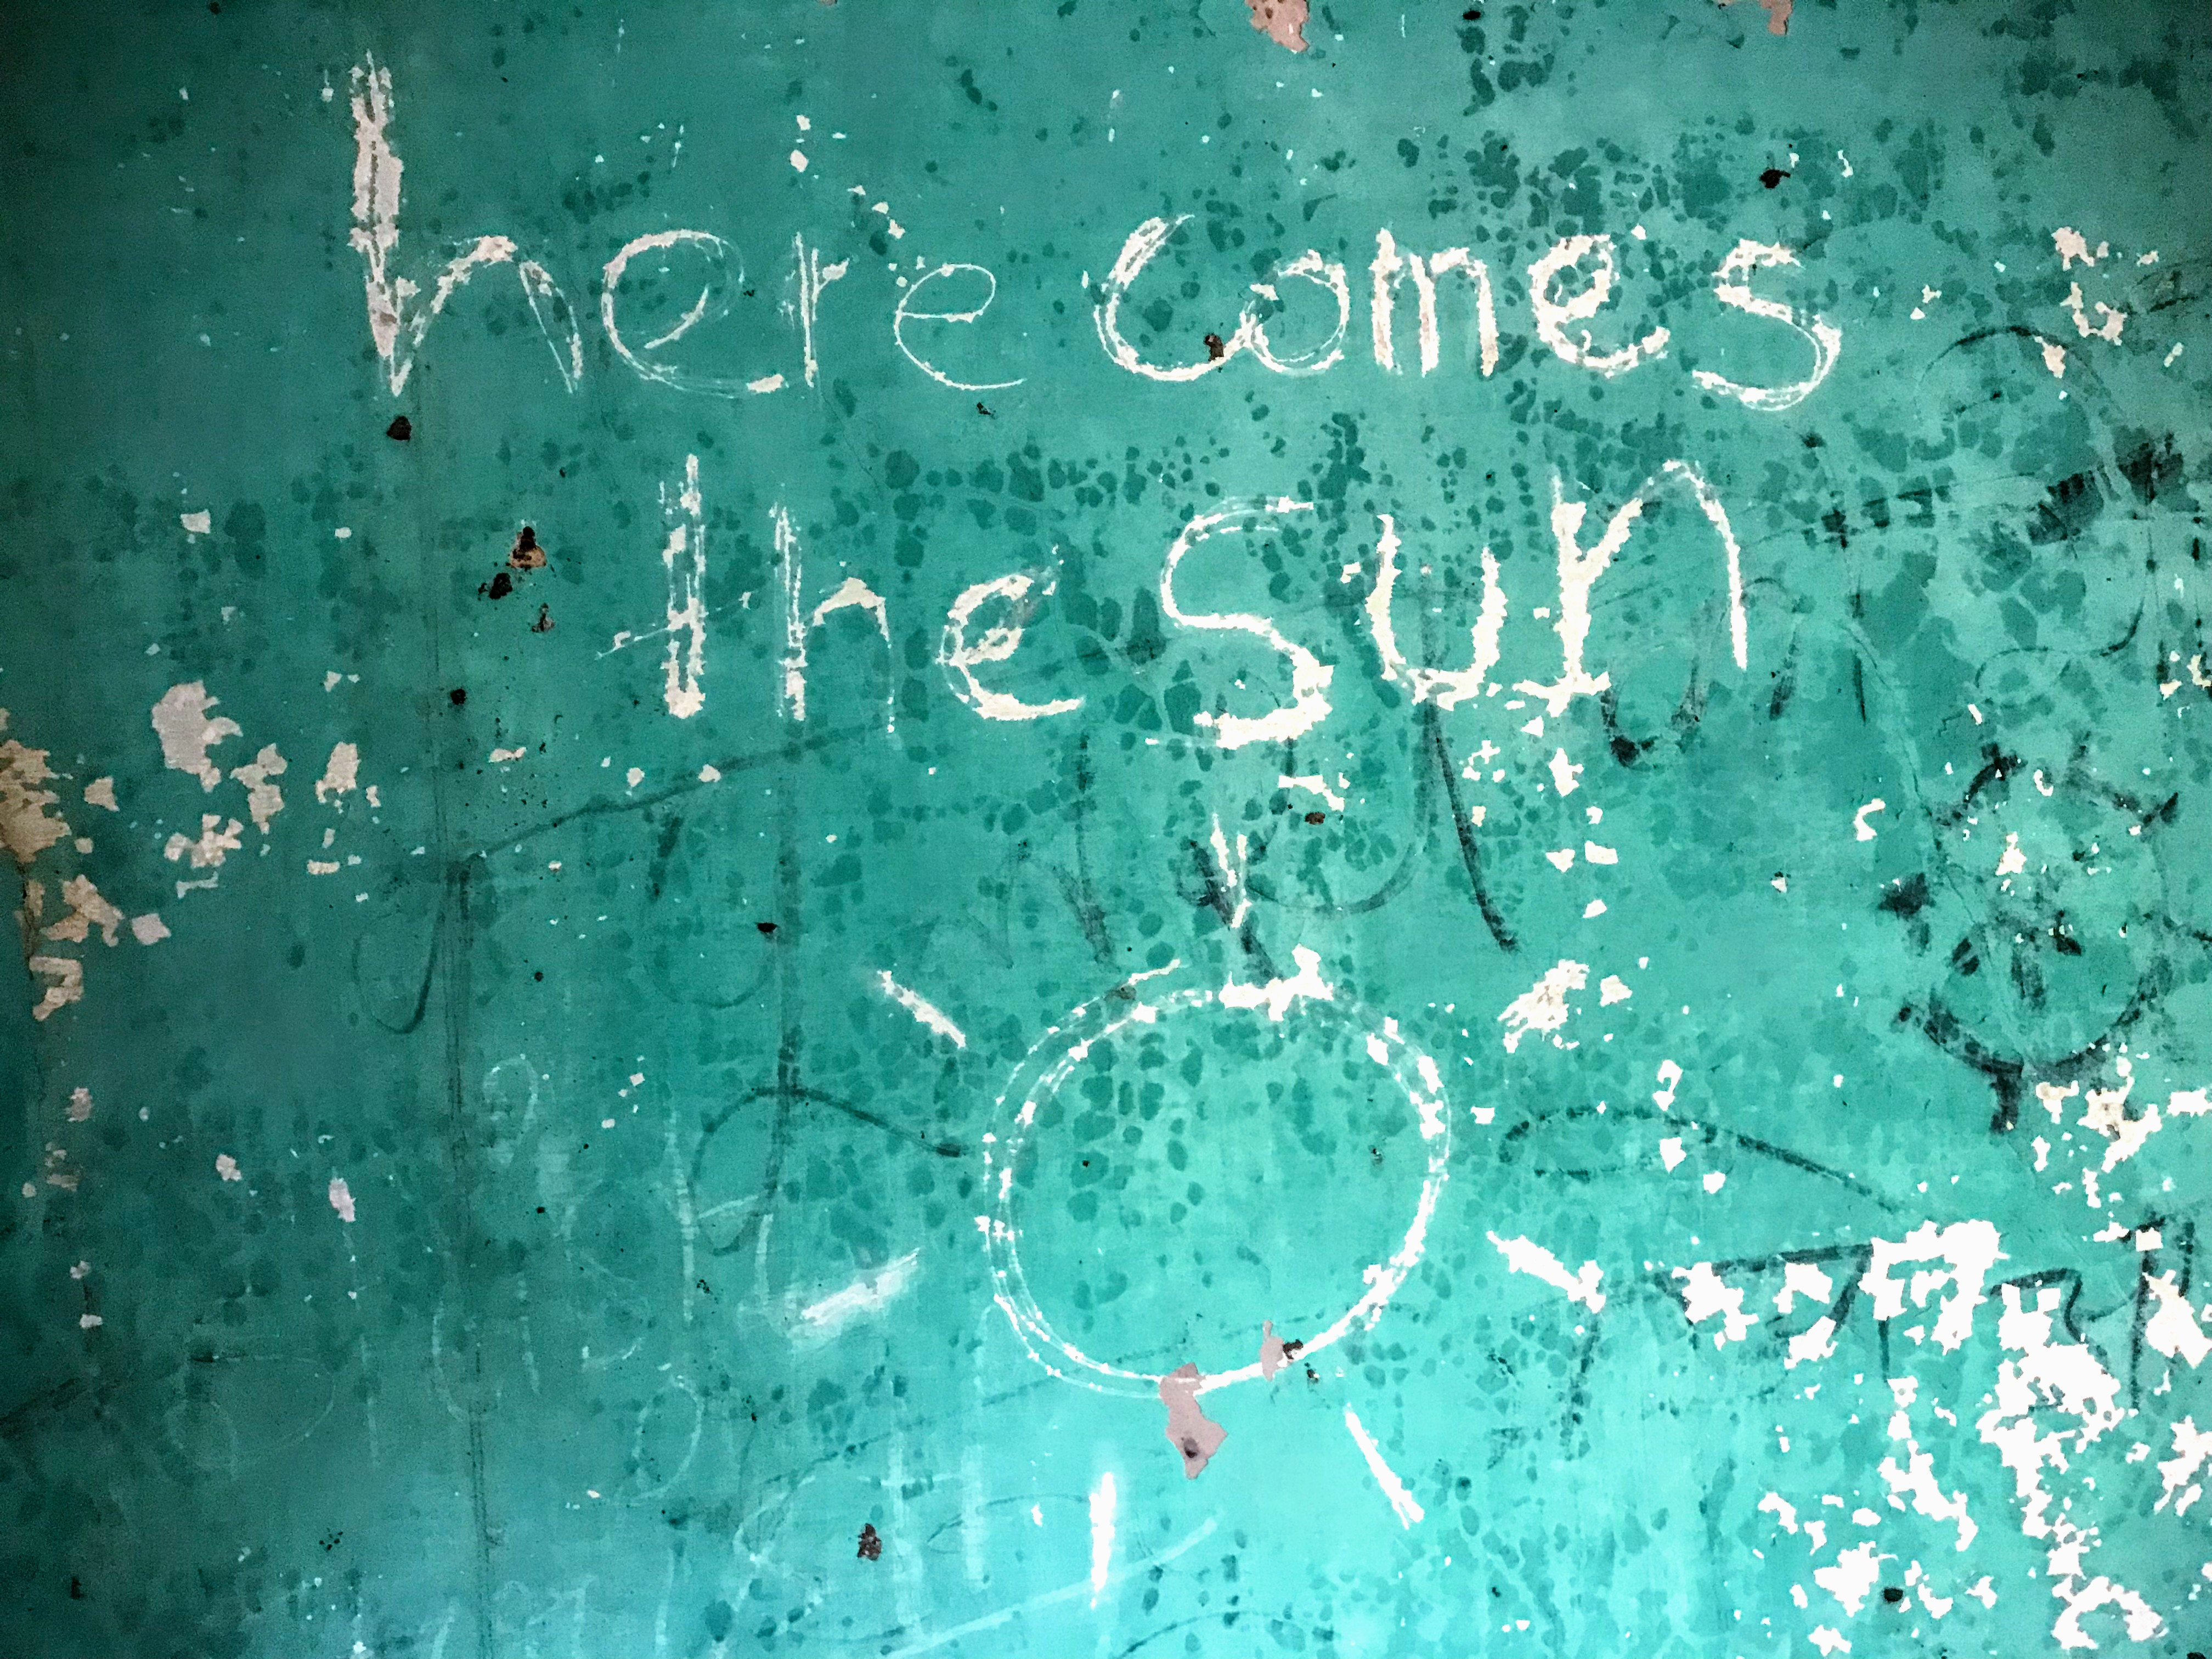 Here Comes the Sun graffiti, The Beatles Ashram, Rishikesh